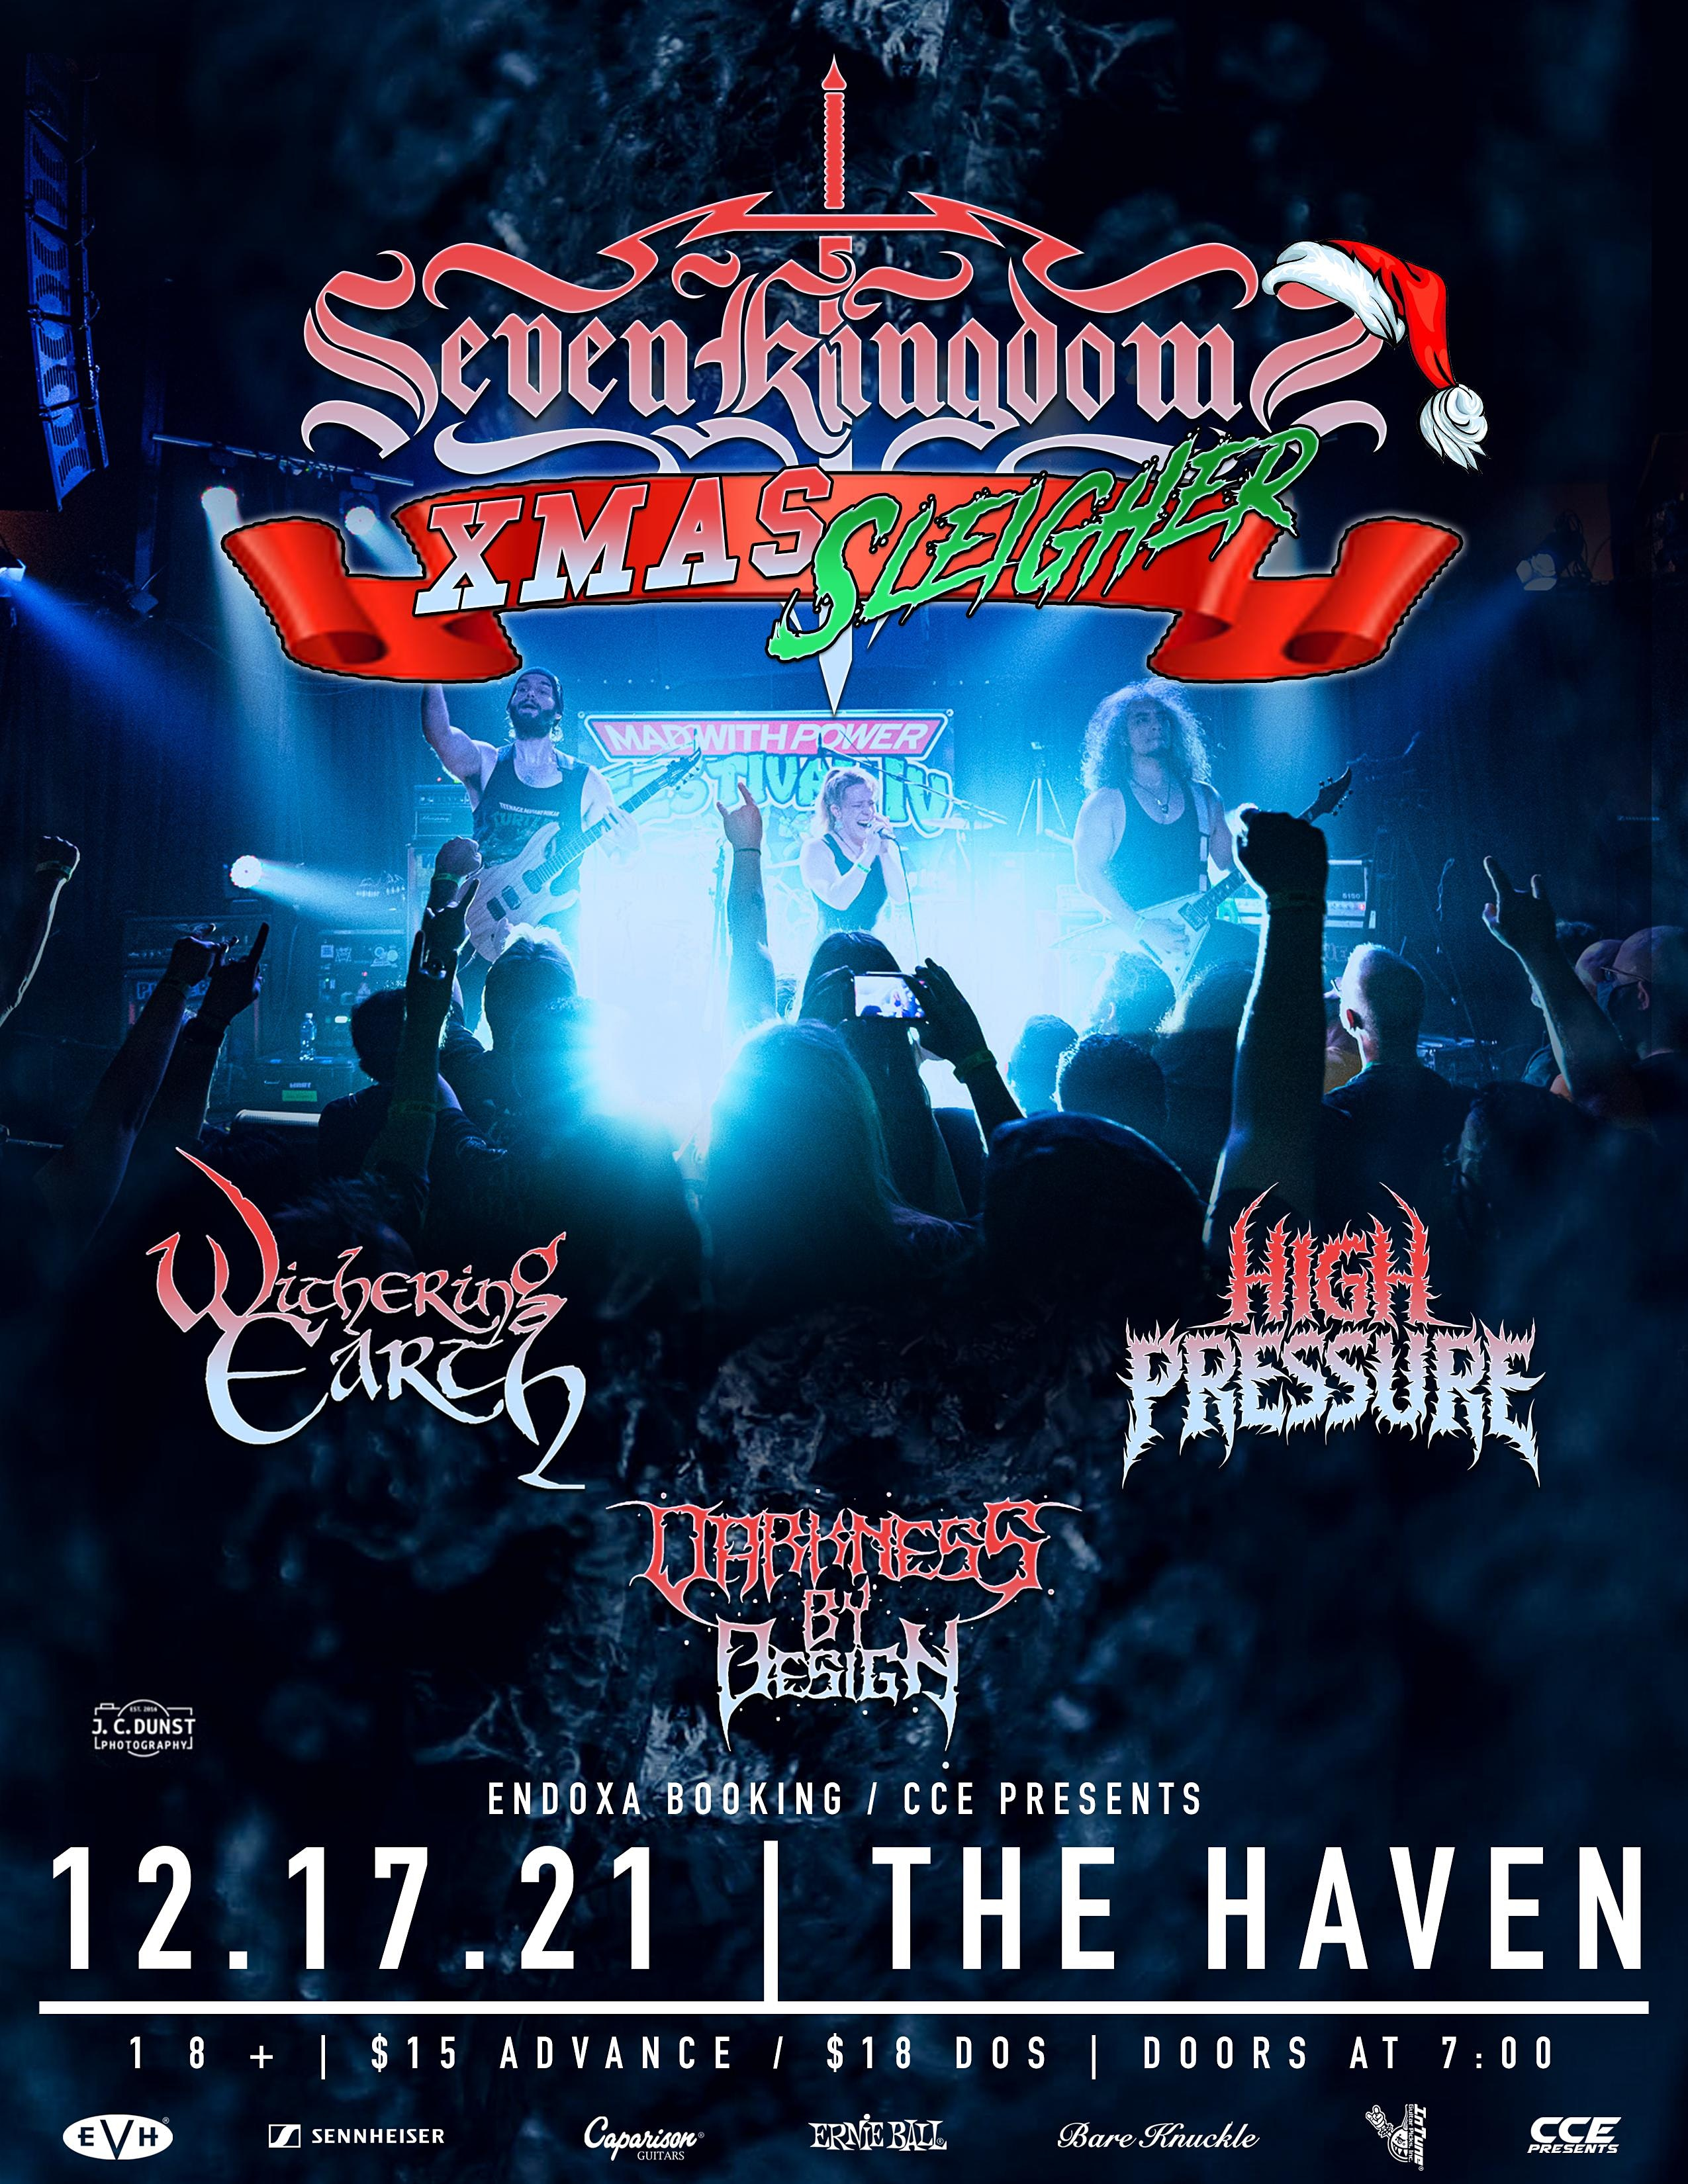 Seven Kingdoms, Withering Earth, High Pressure, and Darkness by Design in Orlando at the Haven